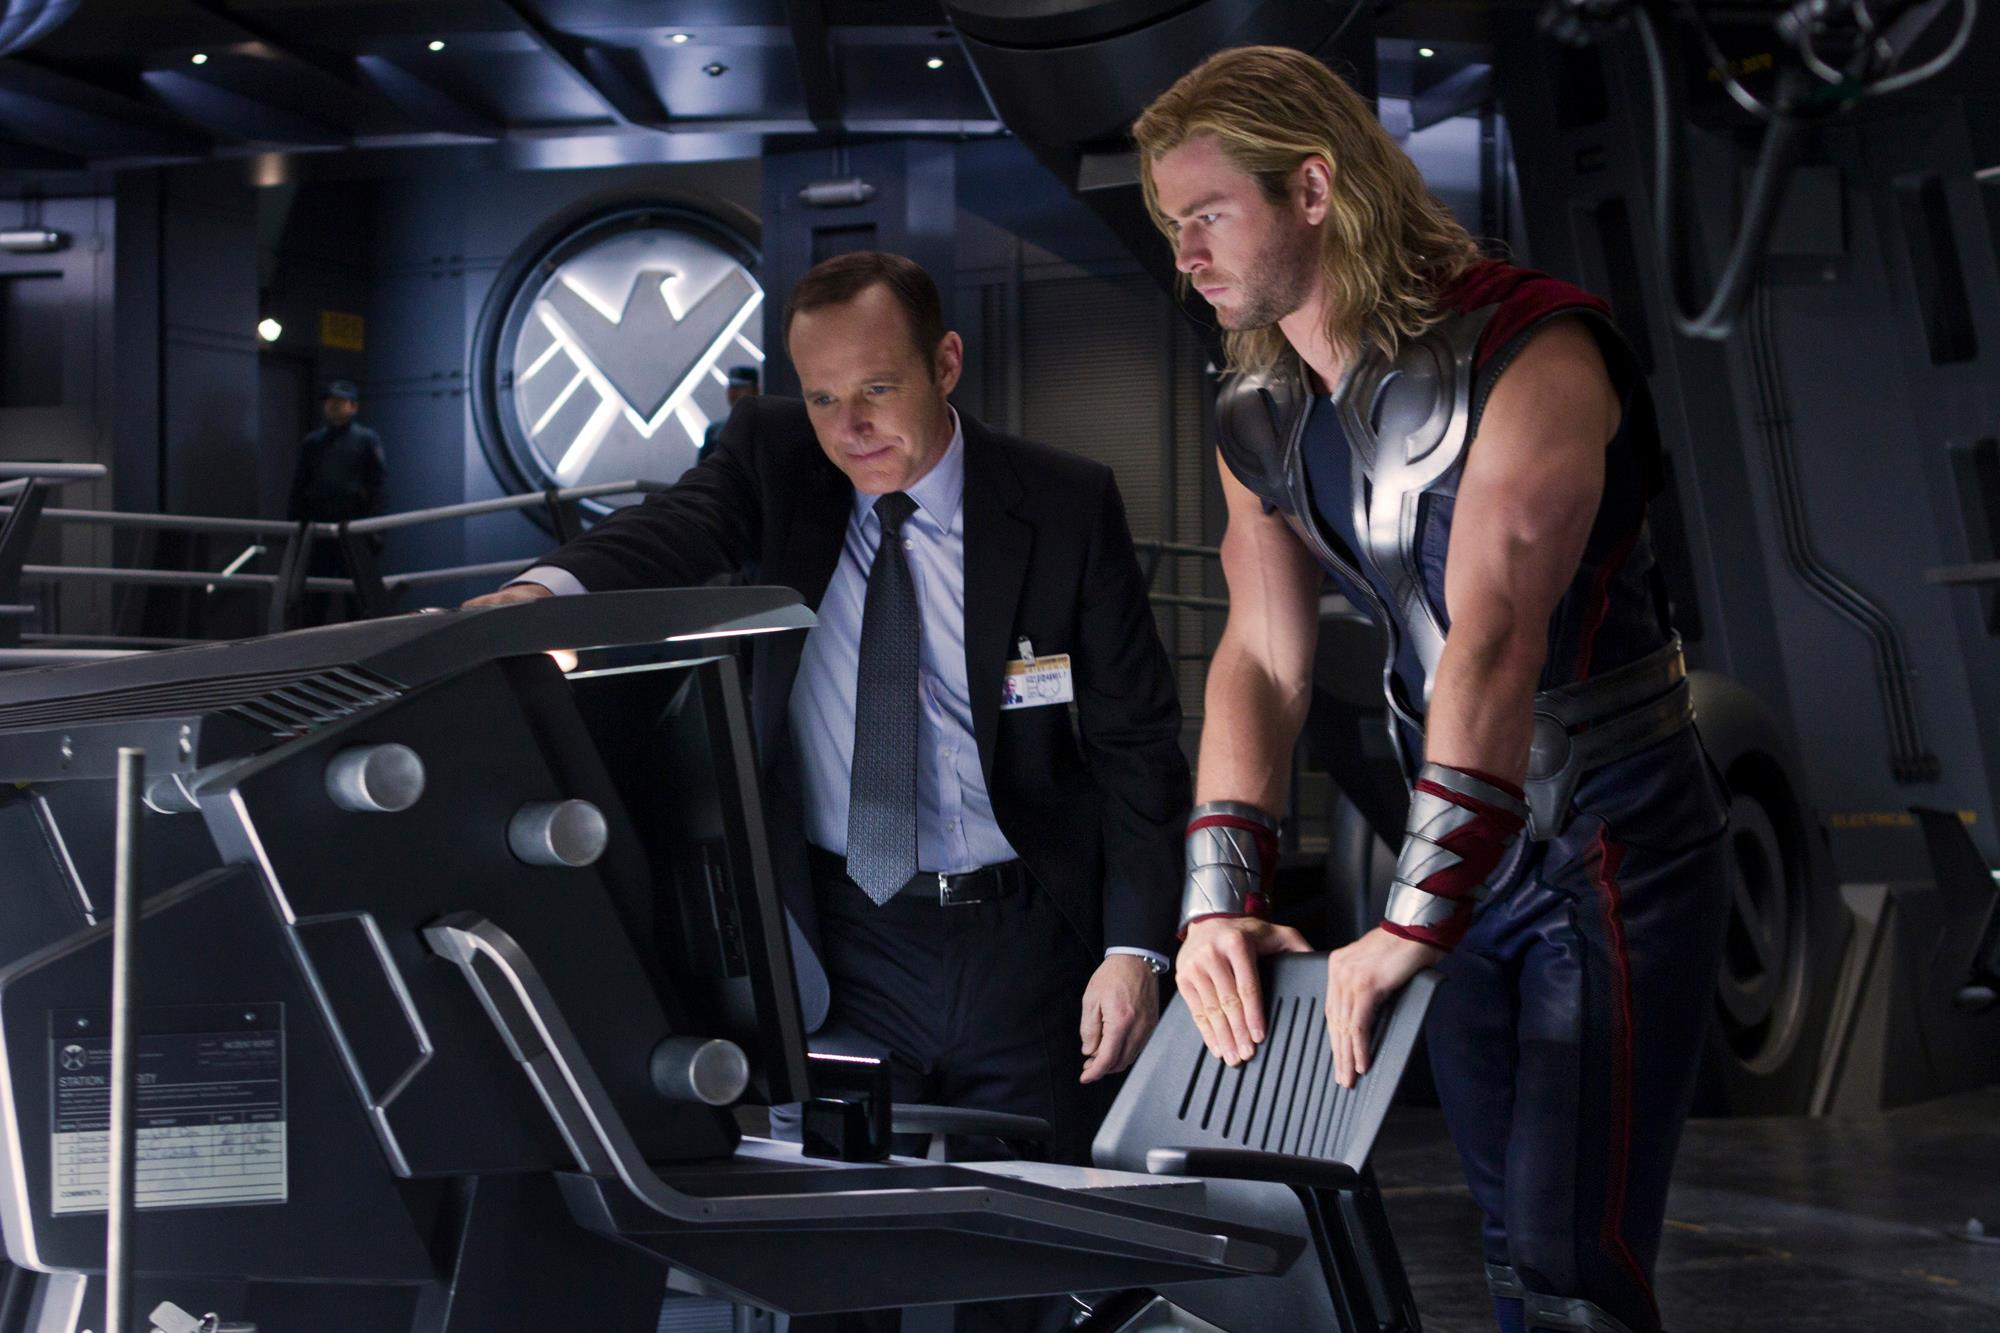 Shield Agents Avengers The Avengers Thor And Agent